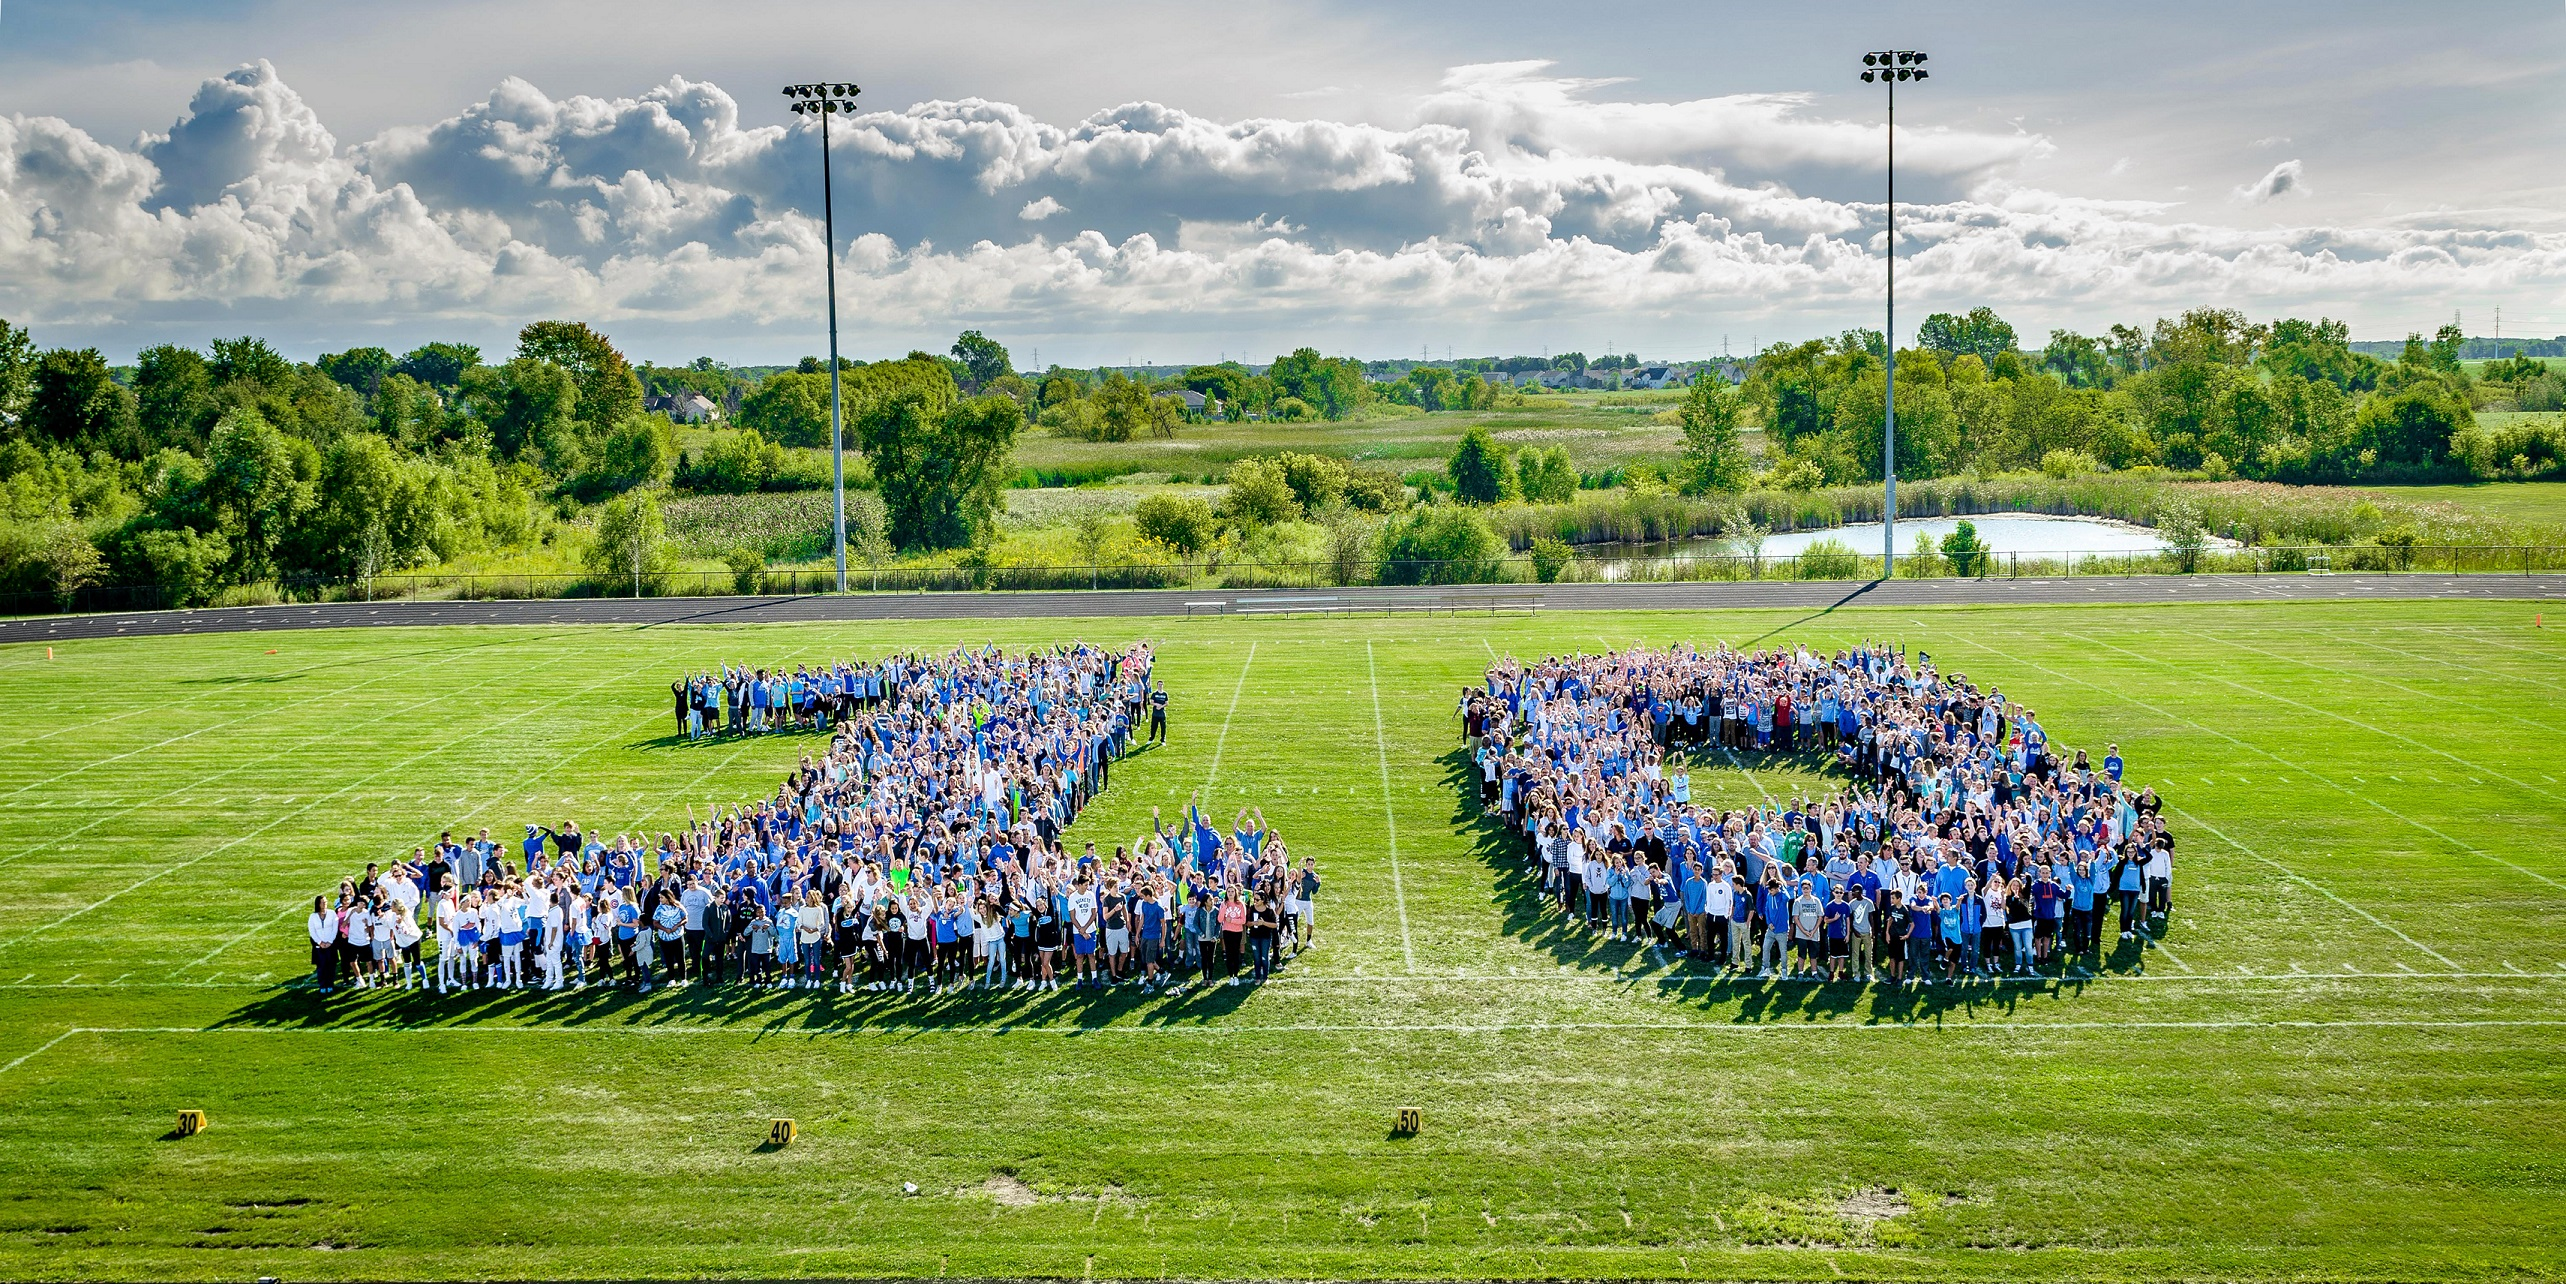 Clark MS students and staff members enjoy the weather and pose for a picture to celebrate the 10th Anniversary opening of the school!